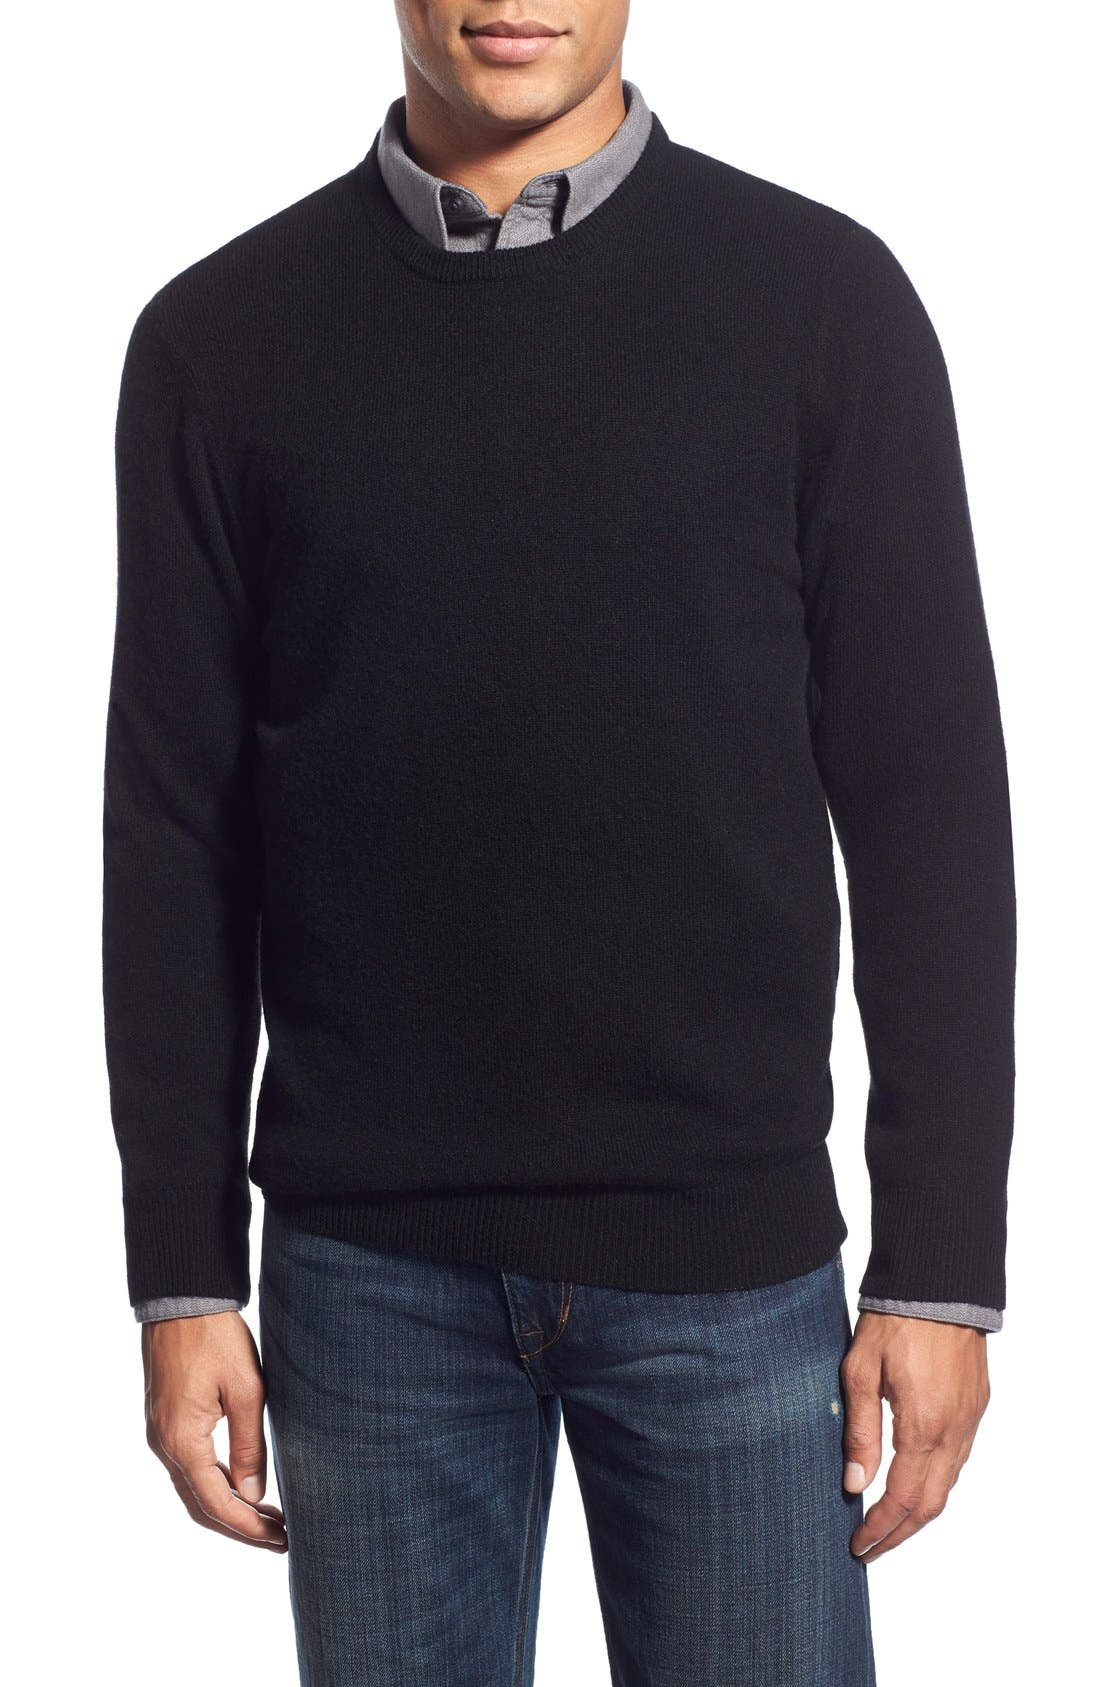 Mélange Knit Merino Wool & Cashmere Sweater, Main, color, 001